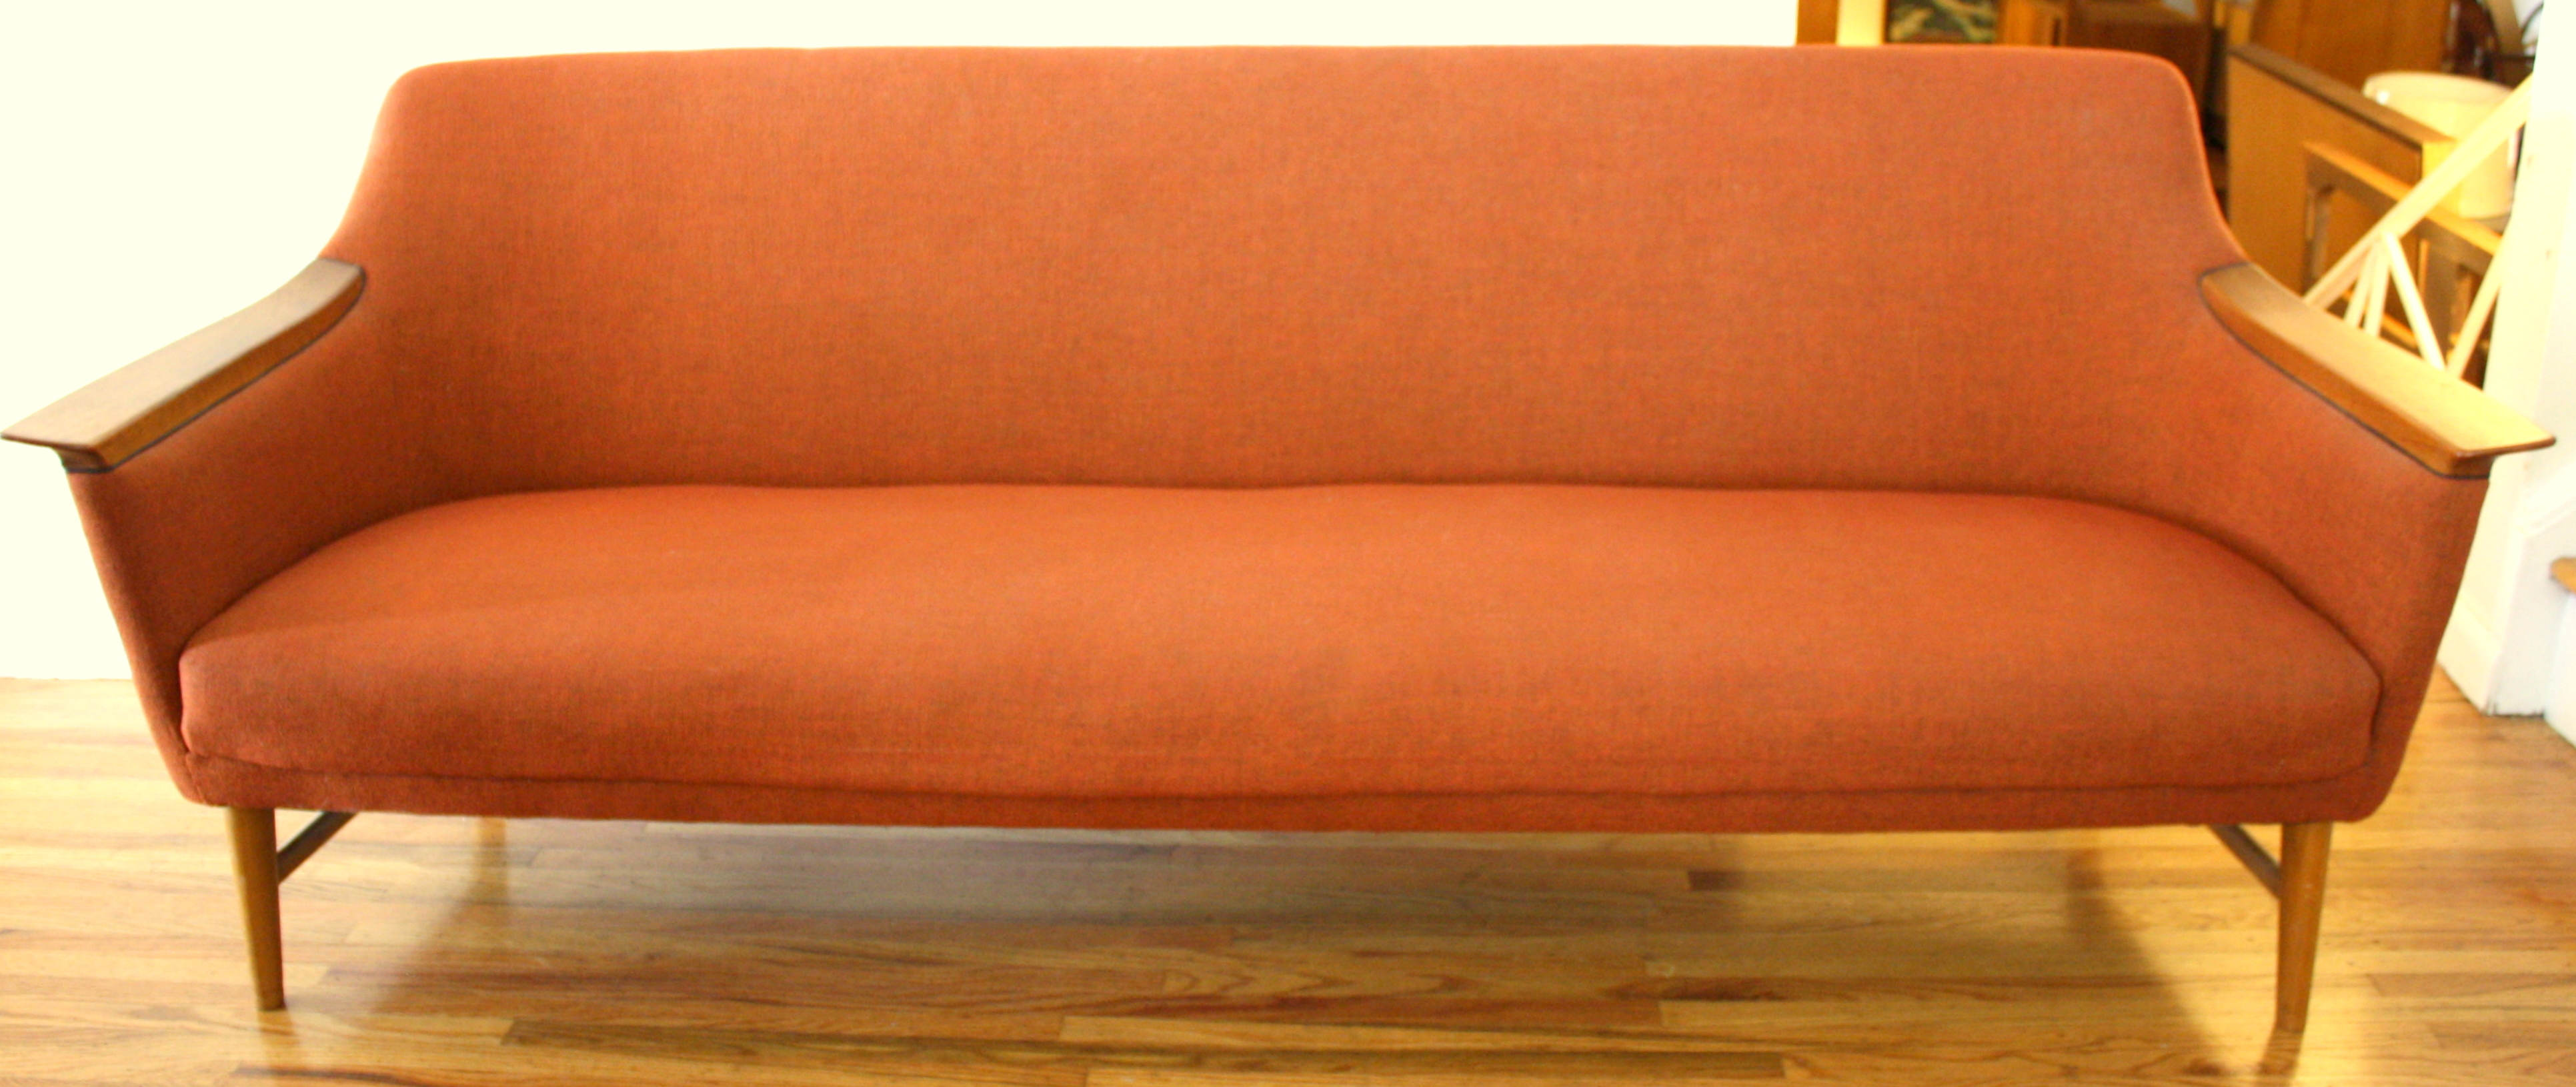 Mid Century Modern Couch with Wood Accented Arms | Picked Vintage